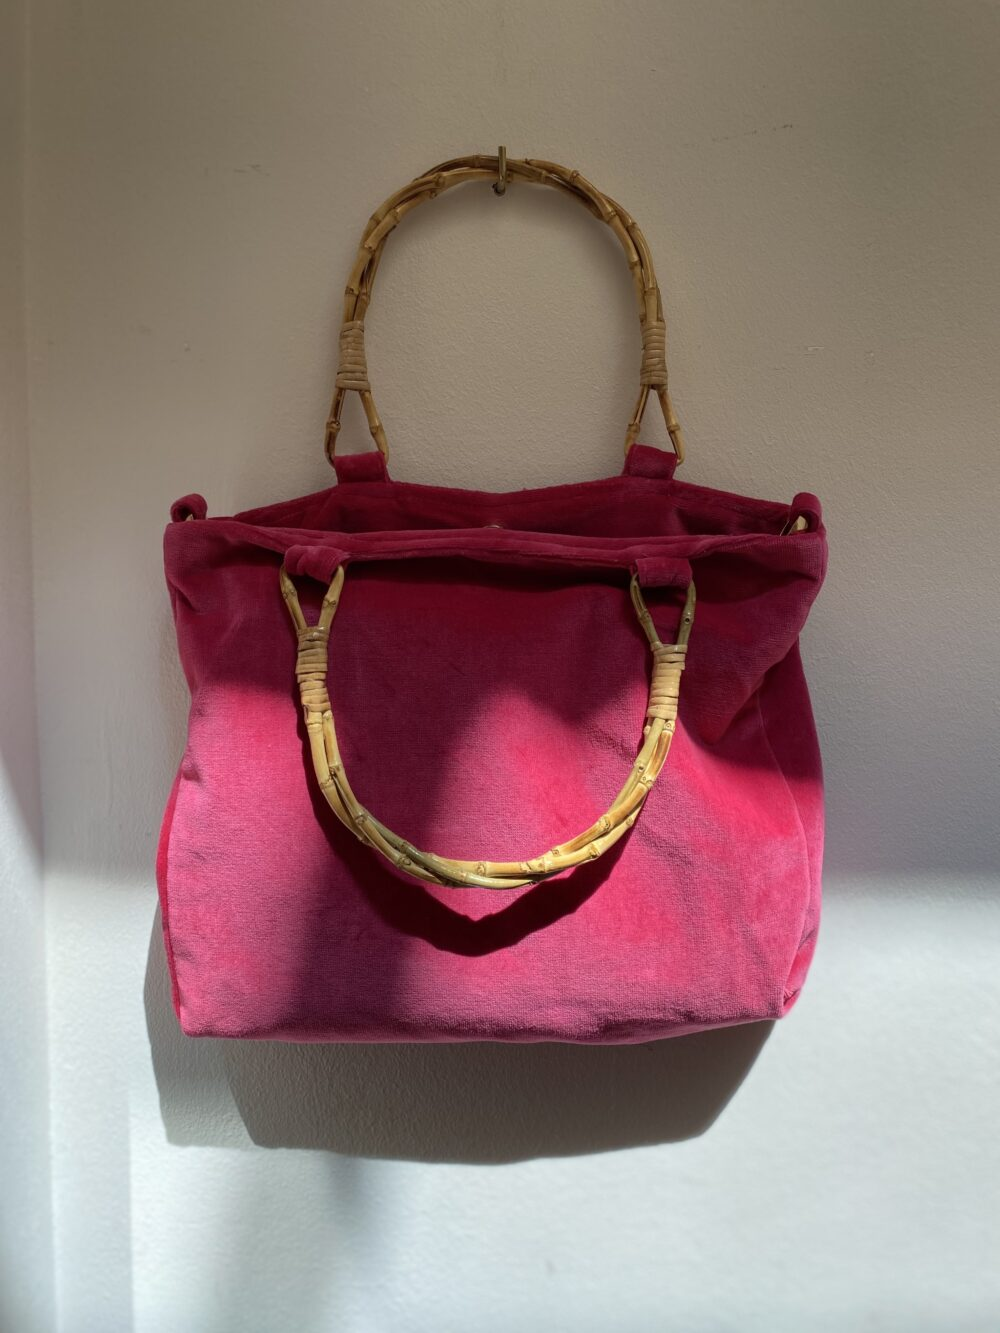 bamboo-hand-bag-pink-rose-novembreatelier